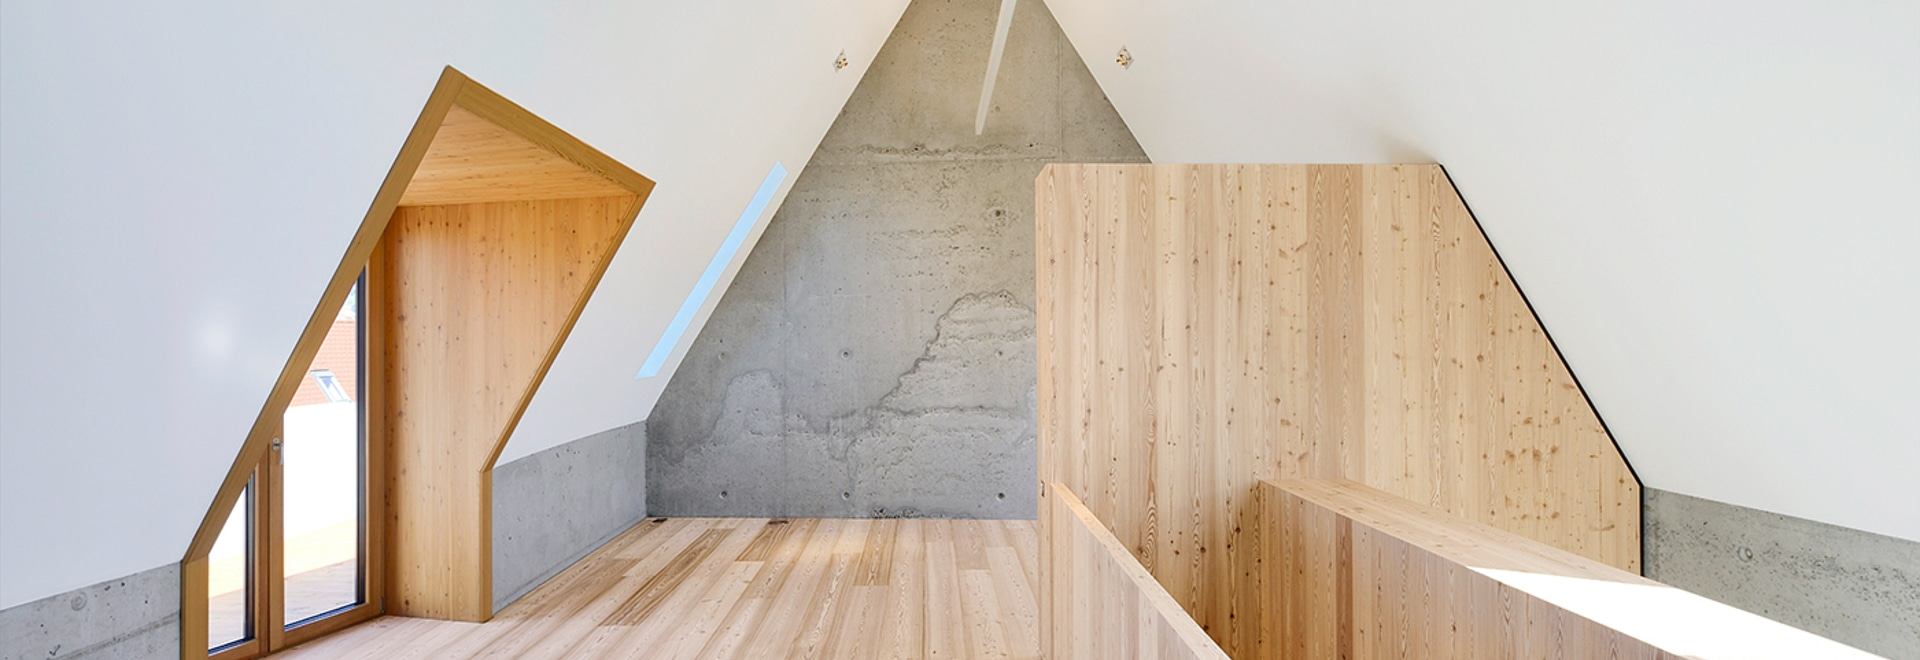 """mafi """"LARCH, brushed, lye treated, white oil"""" meets exposed concrete"""